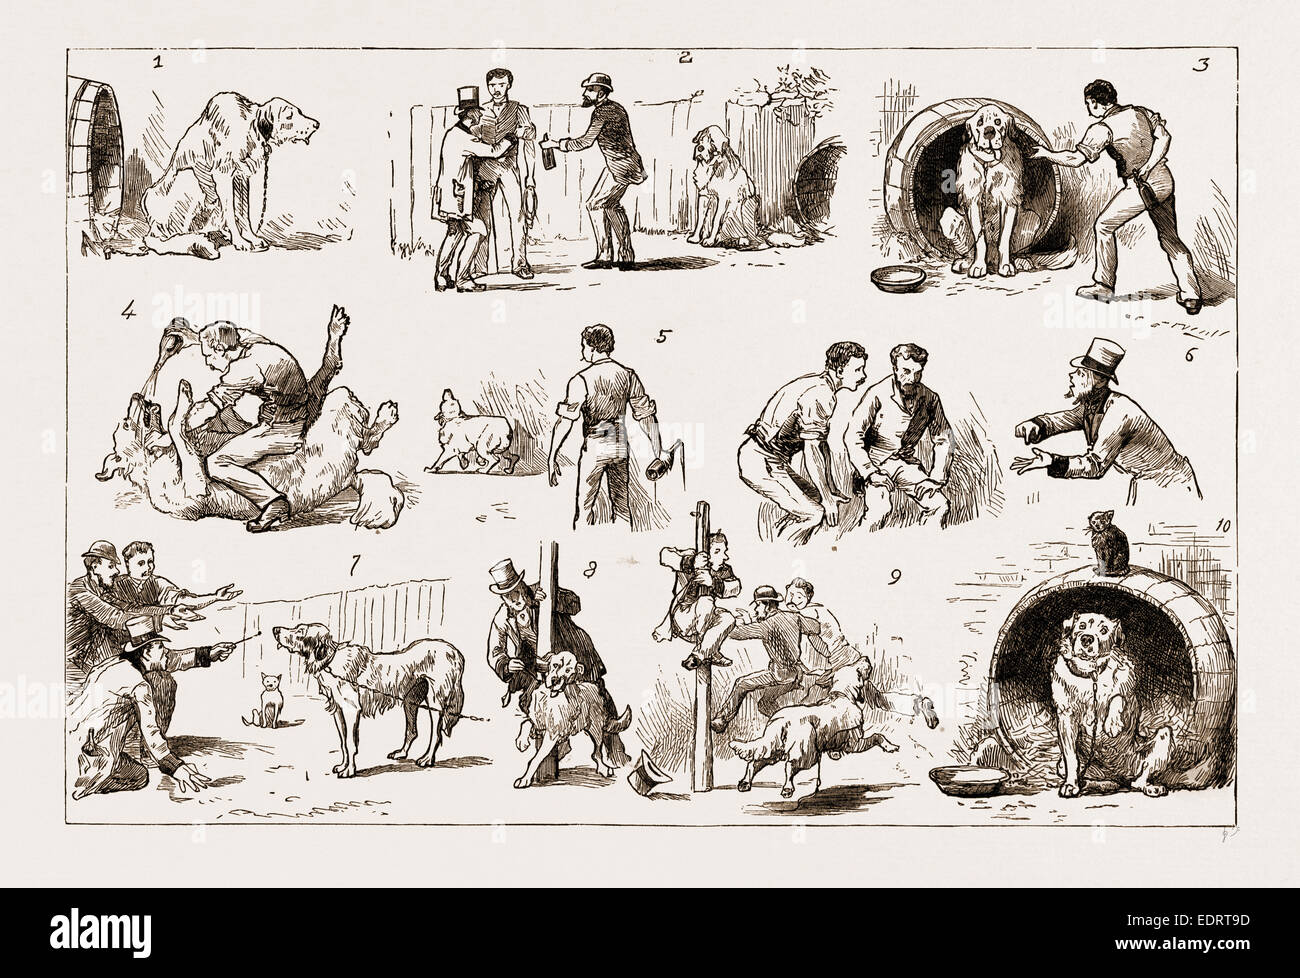 DOSING A DOG, 1883: 1. Our St. Bernard Showed Symptoms of Illness. 2. An Amateur Vet is Called in - Stock Image